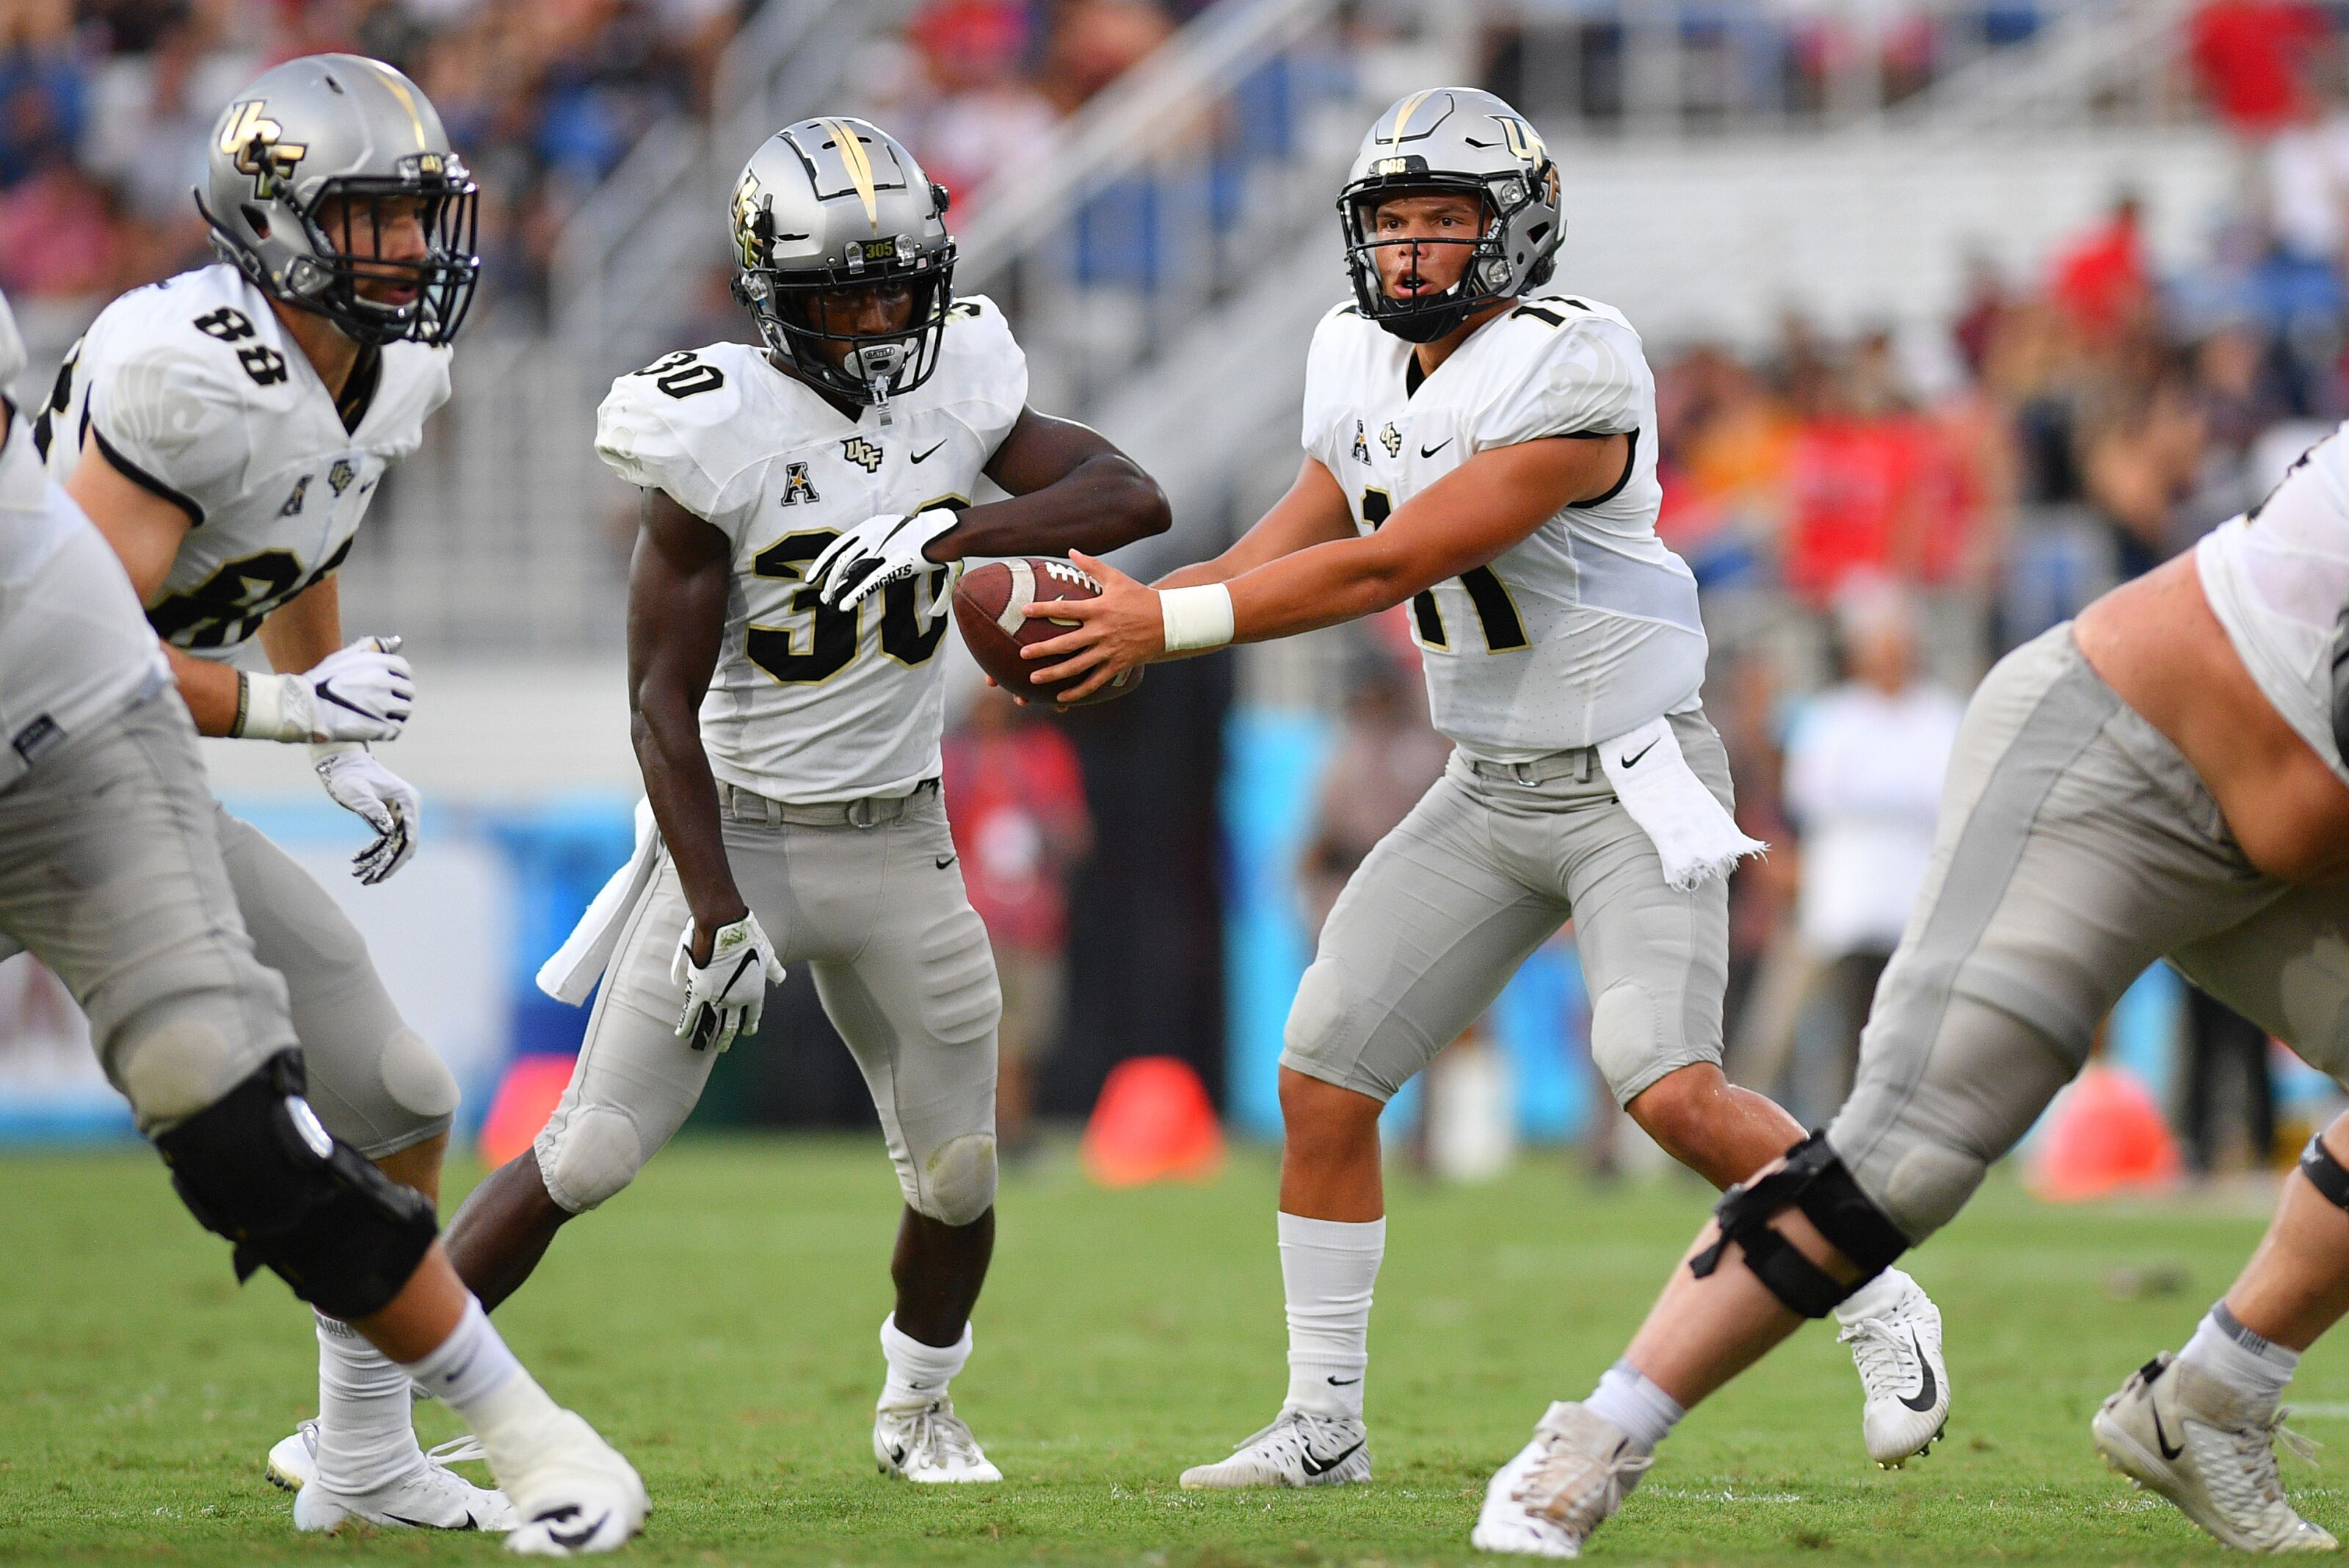 UCF Football: Report card from big Week 3 win over Stanford